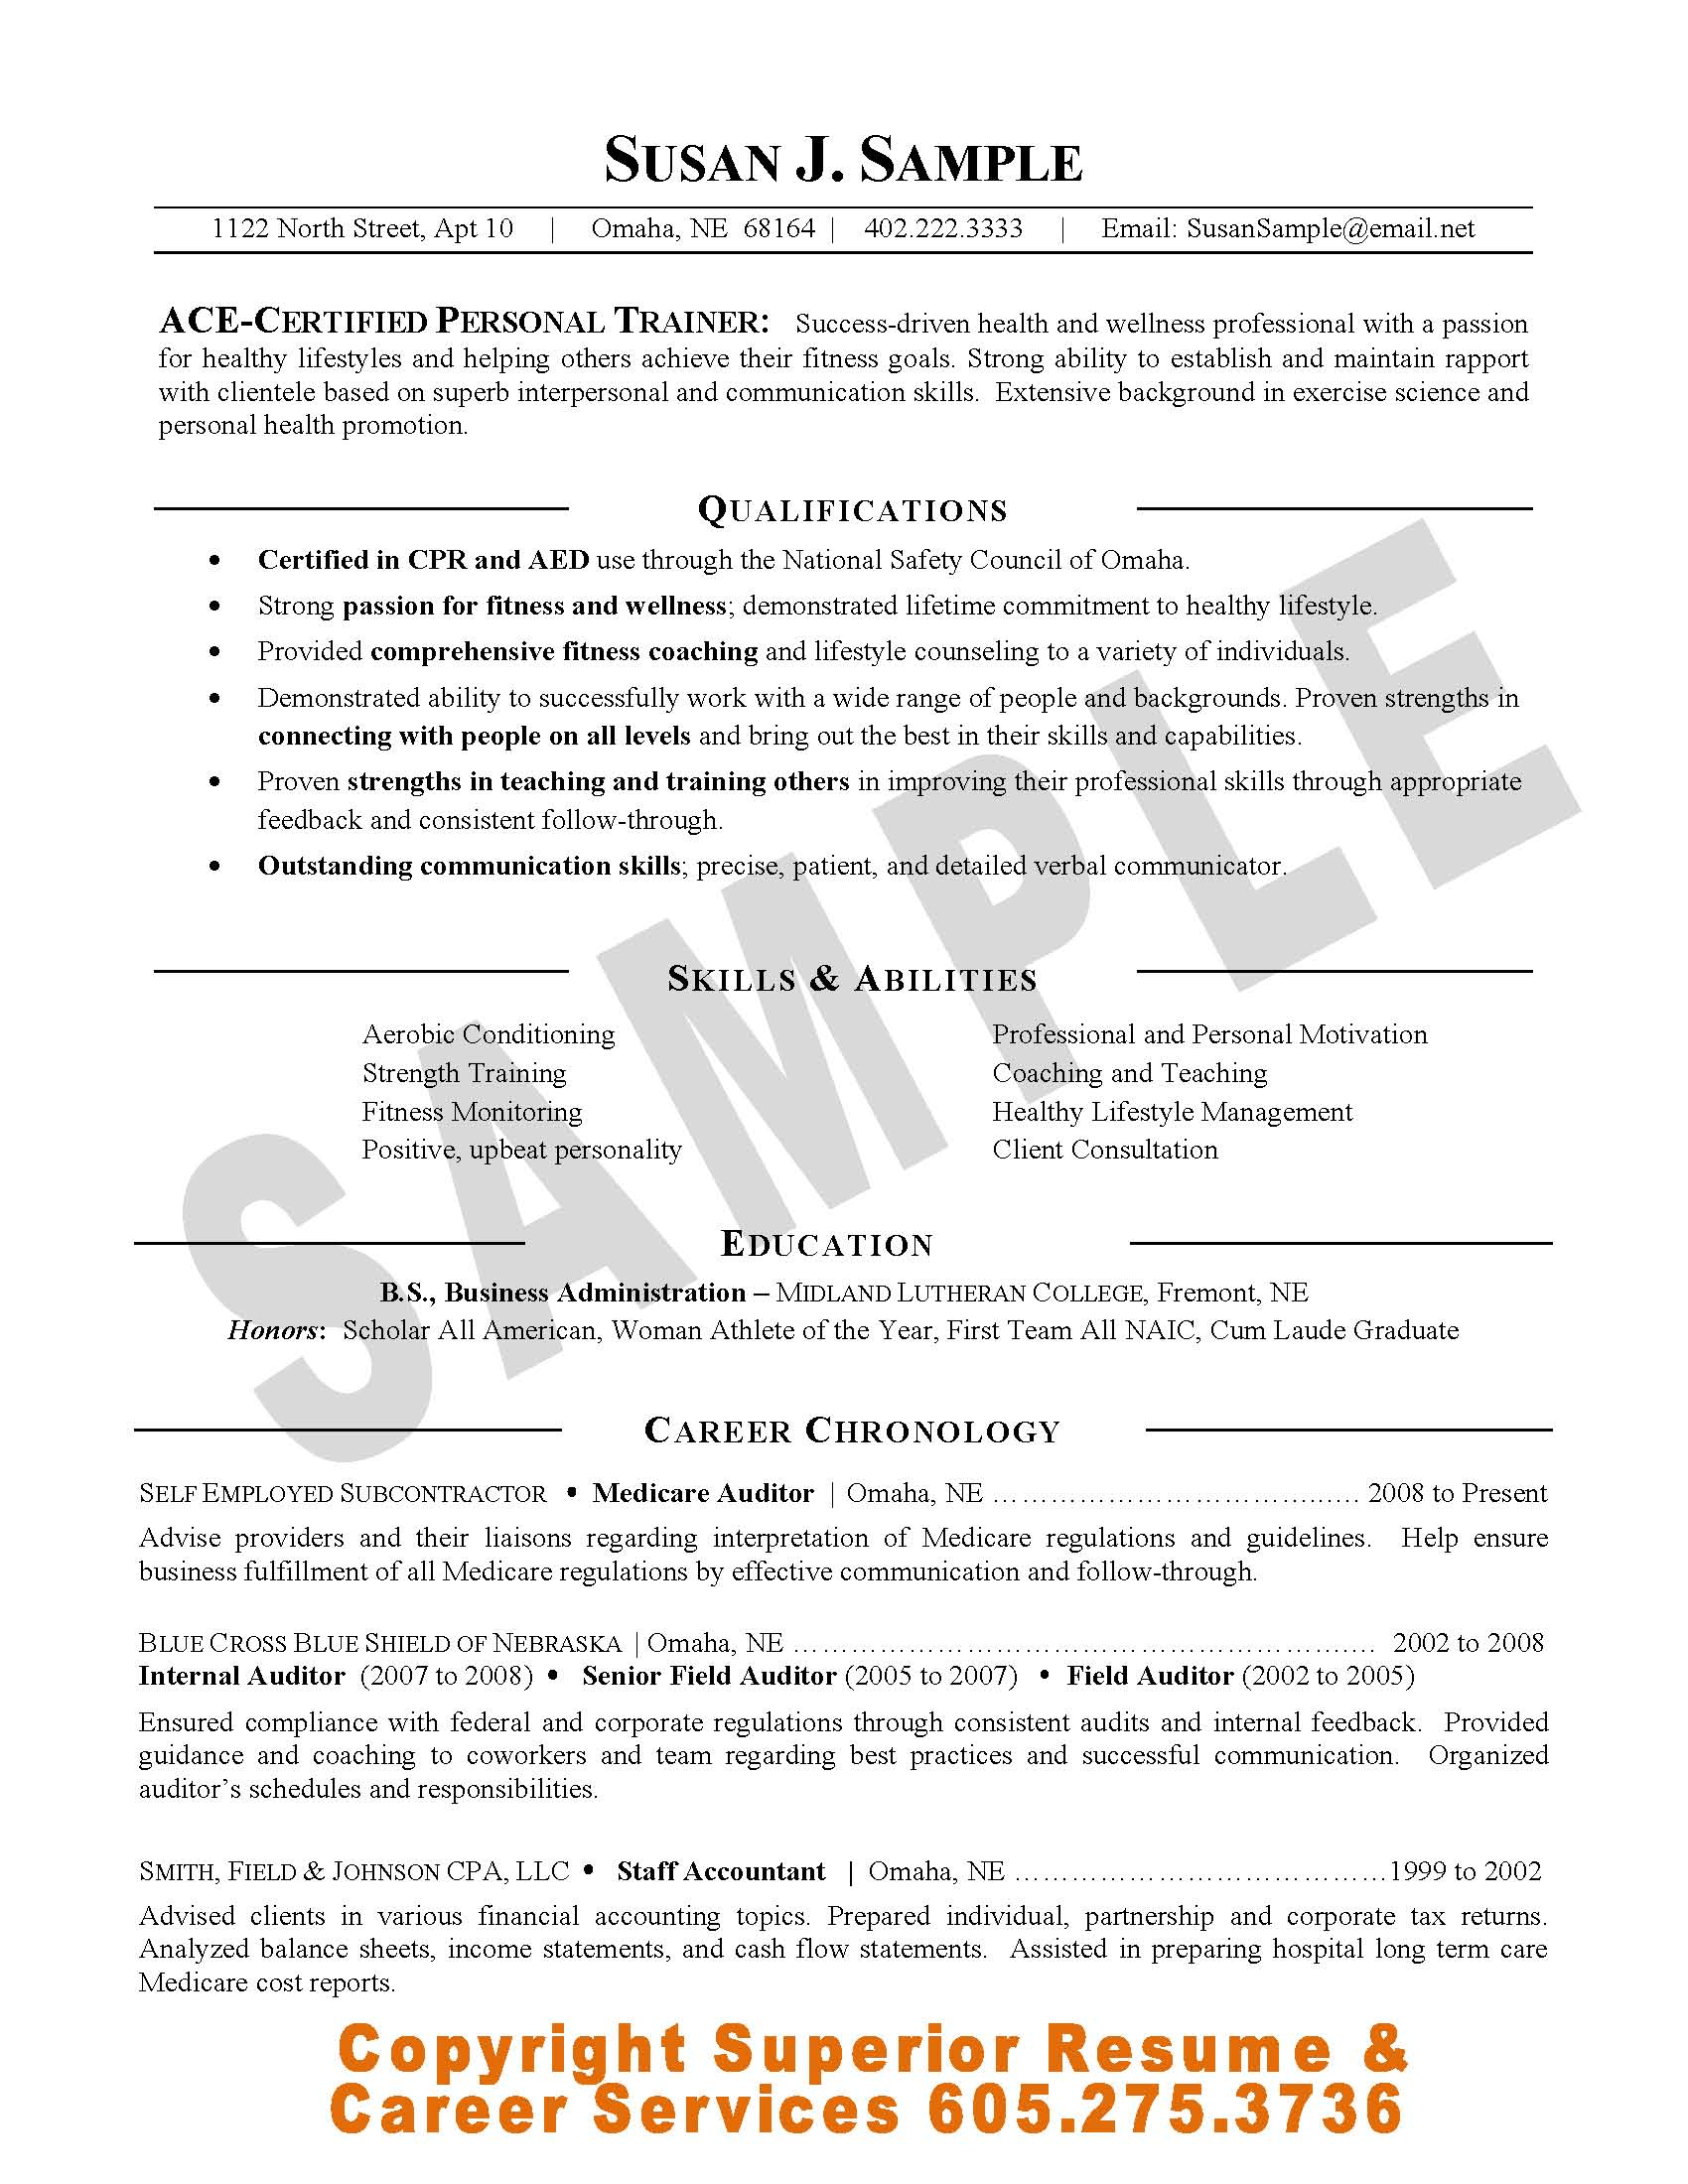 internal audit career objective sample sample document resume internal audit career objective sample sample internal auditor cv careerride image internal auditor resume sample